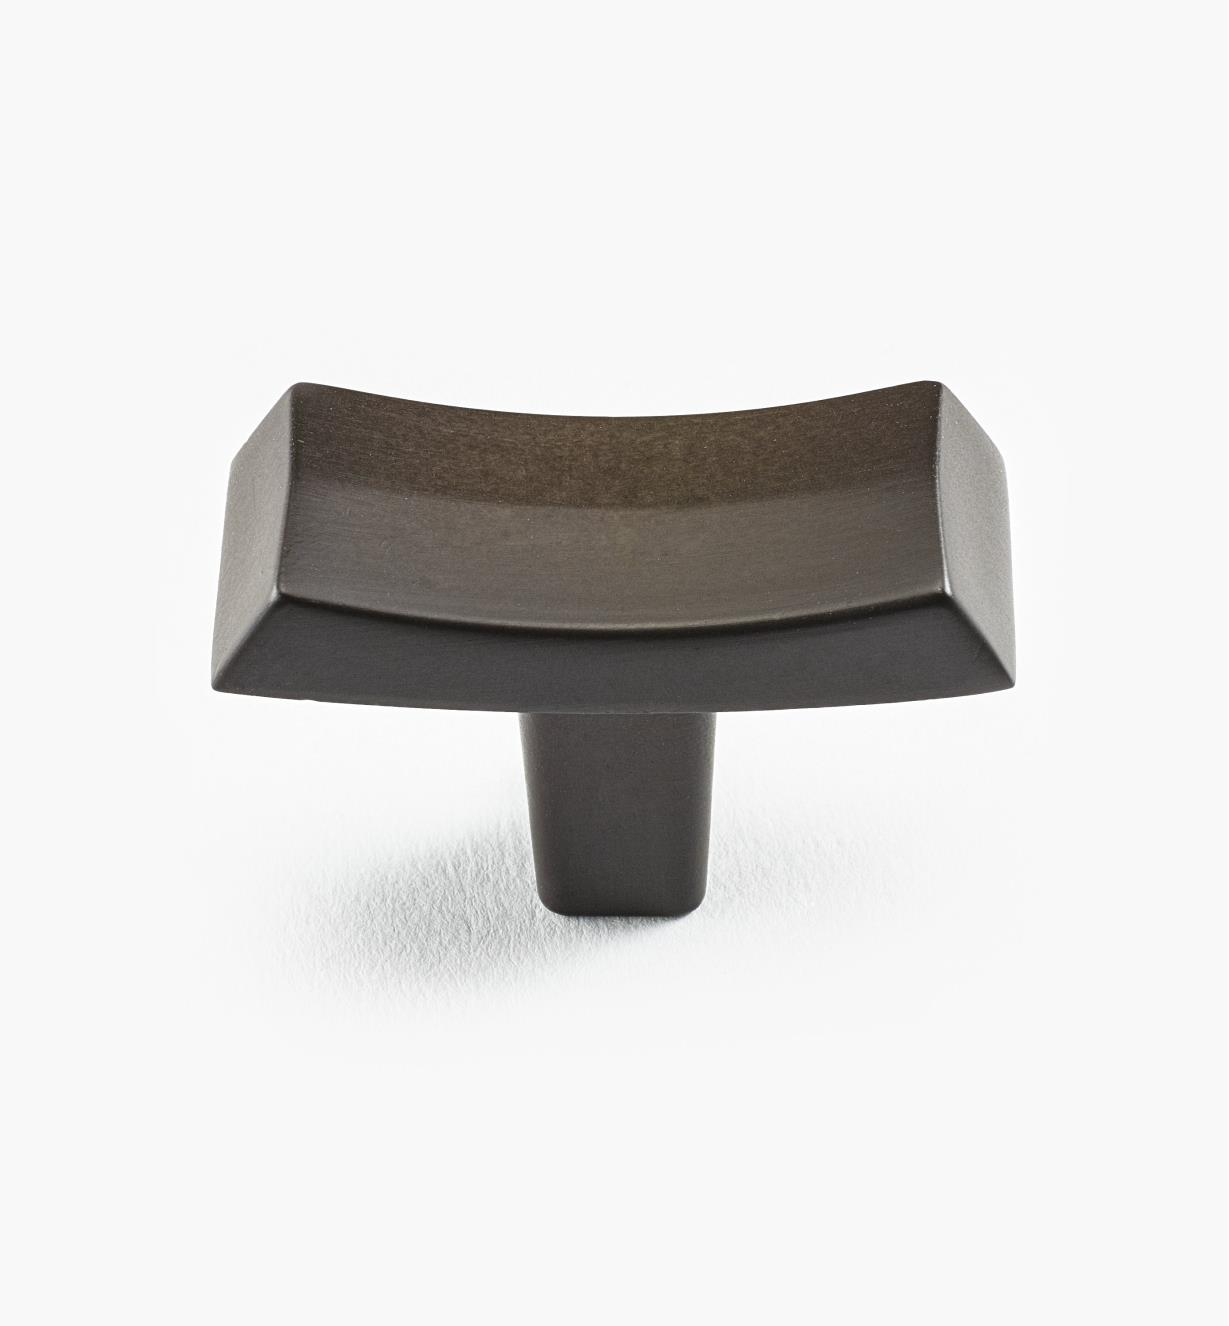 02W1330 - 45mm Oil-Rubbed Bronze Knob